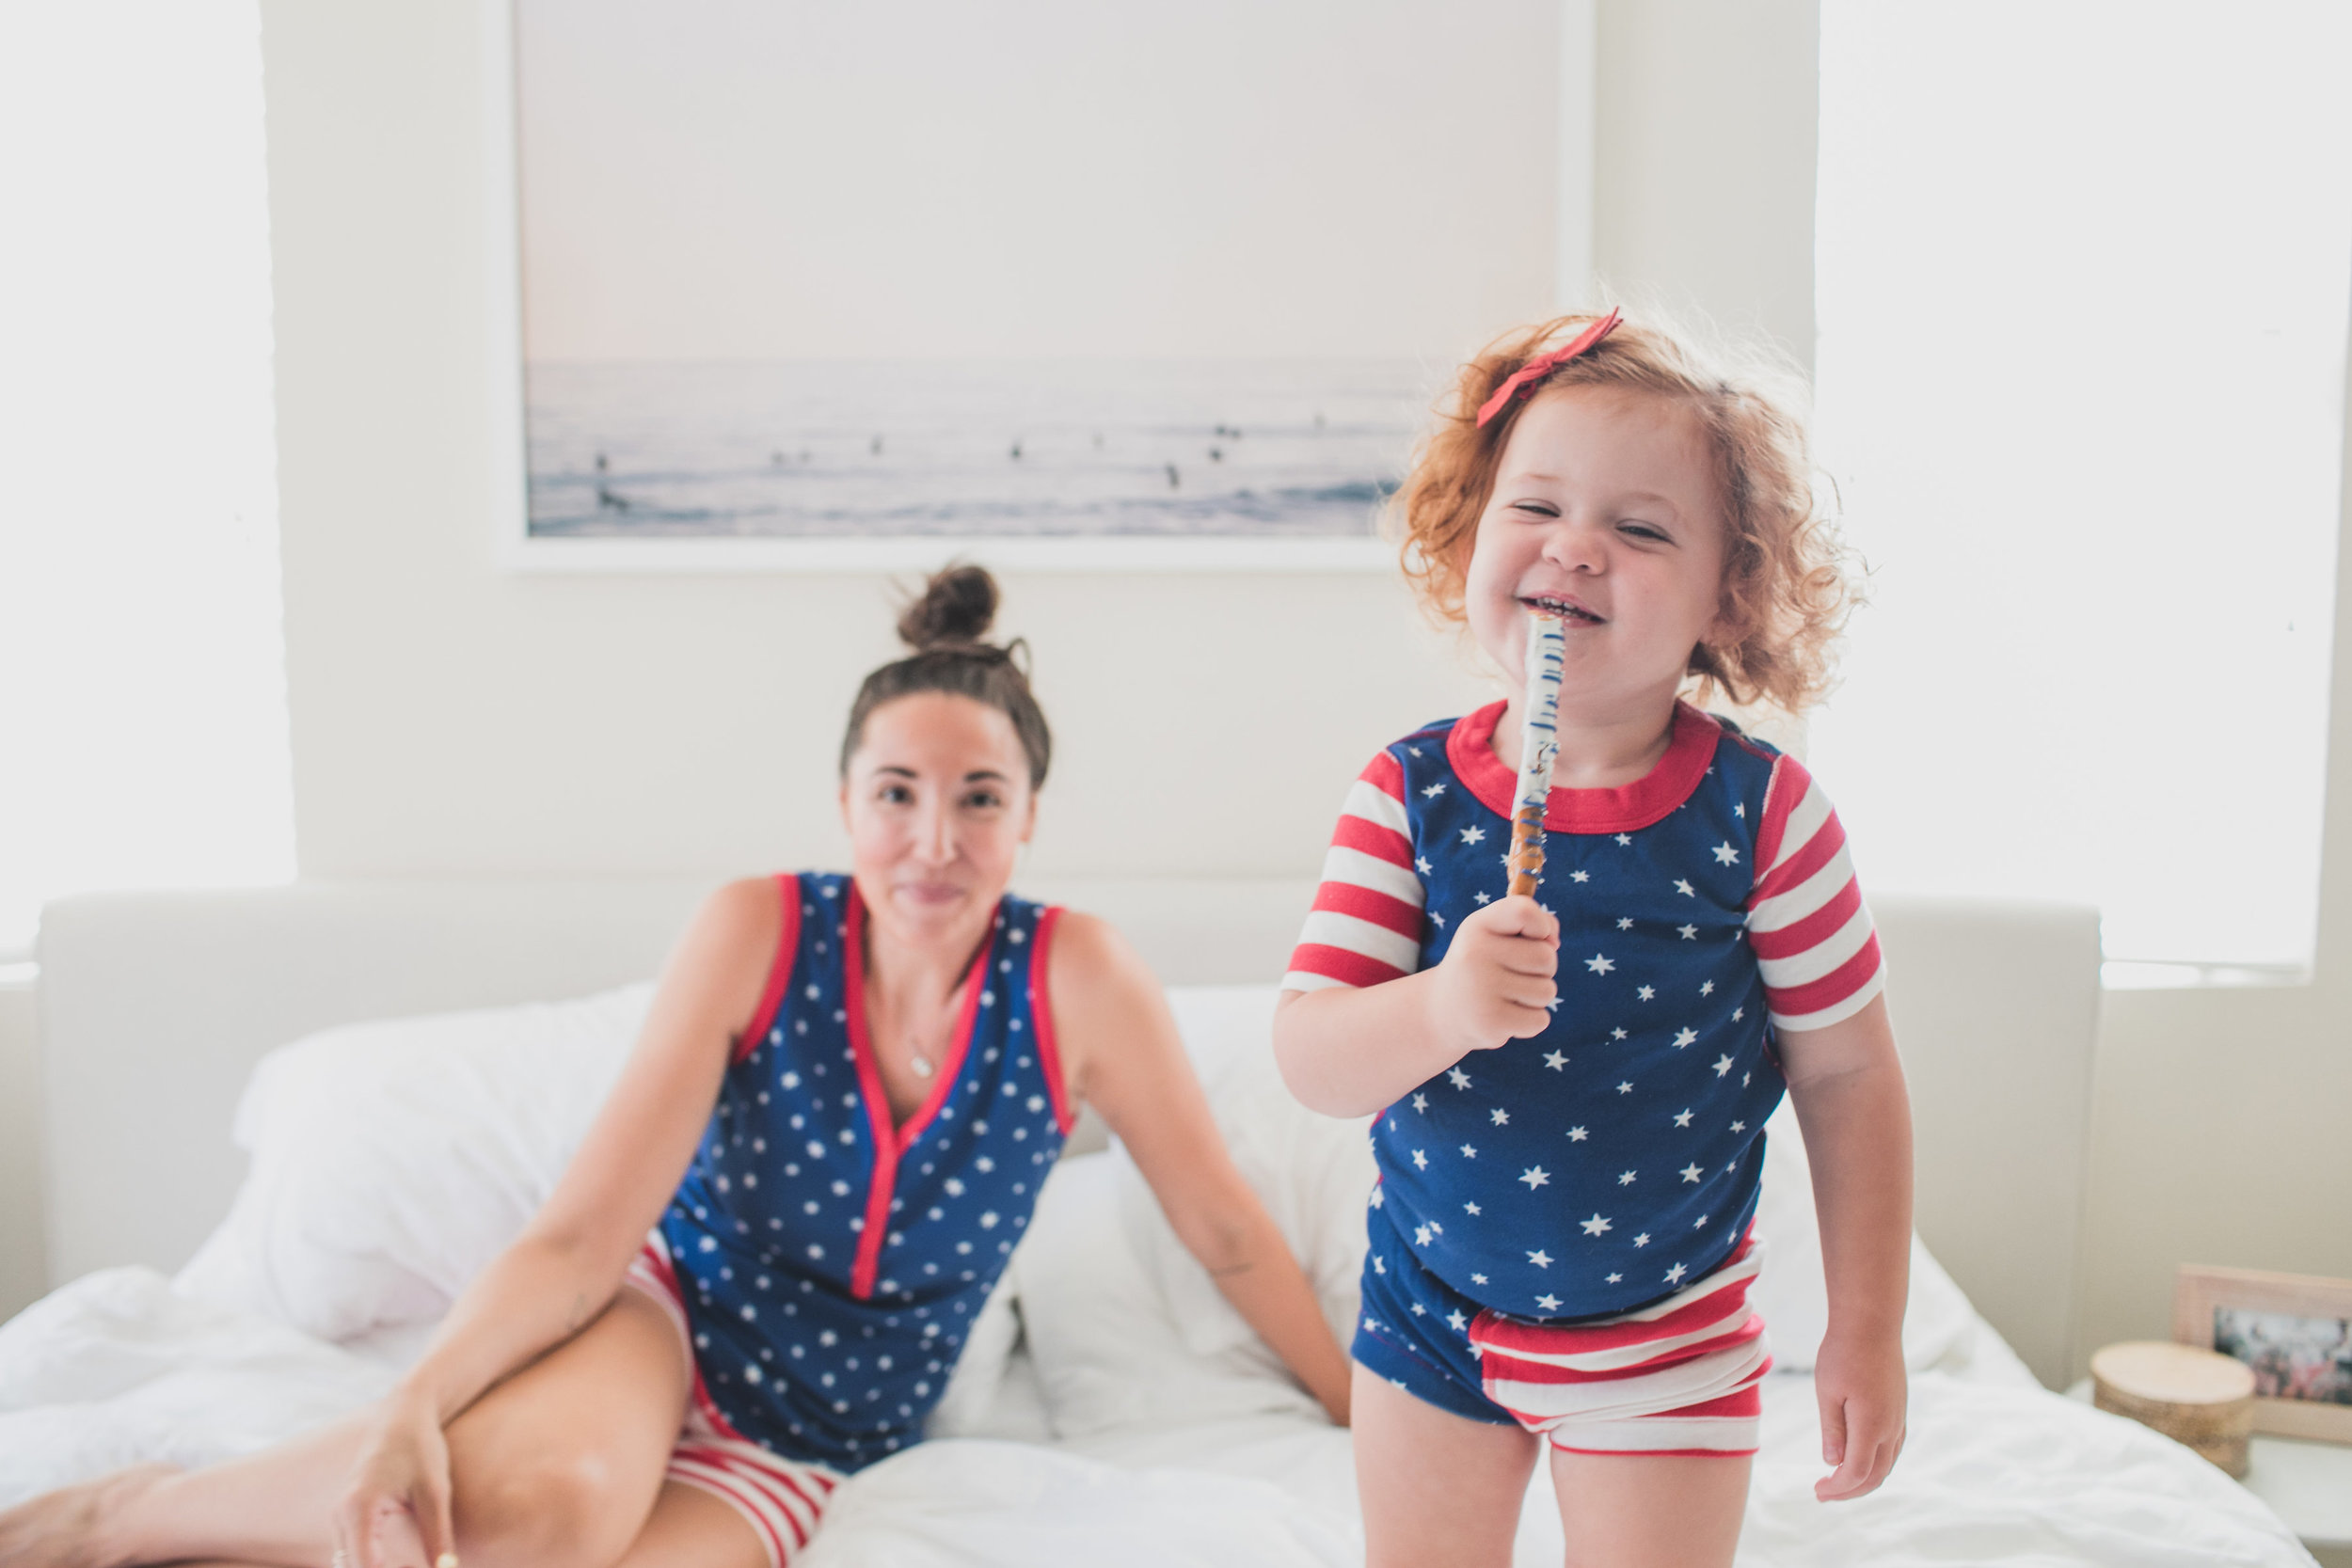 Baby_Boy_Bakery_Fourth_of_July_Lily_Ro_Photography-8542.jpg